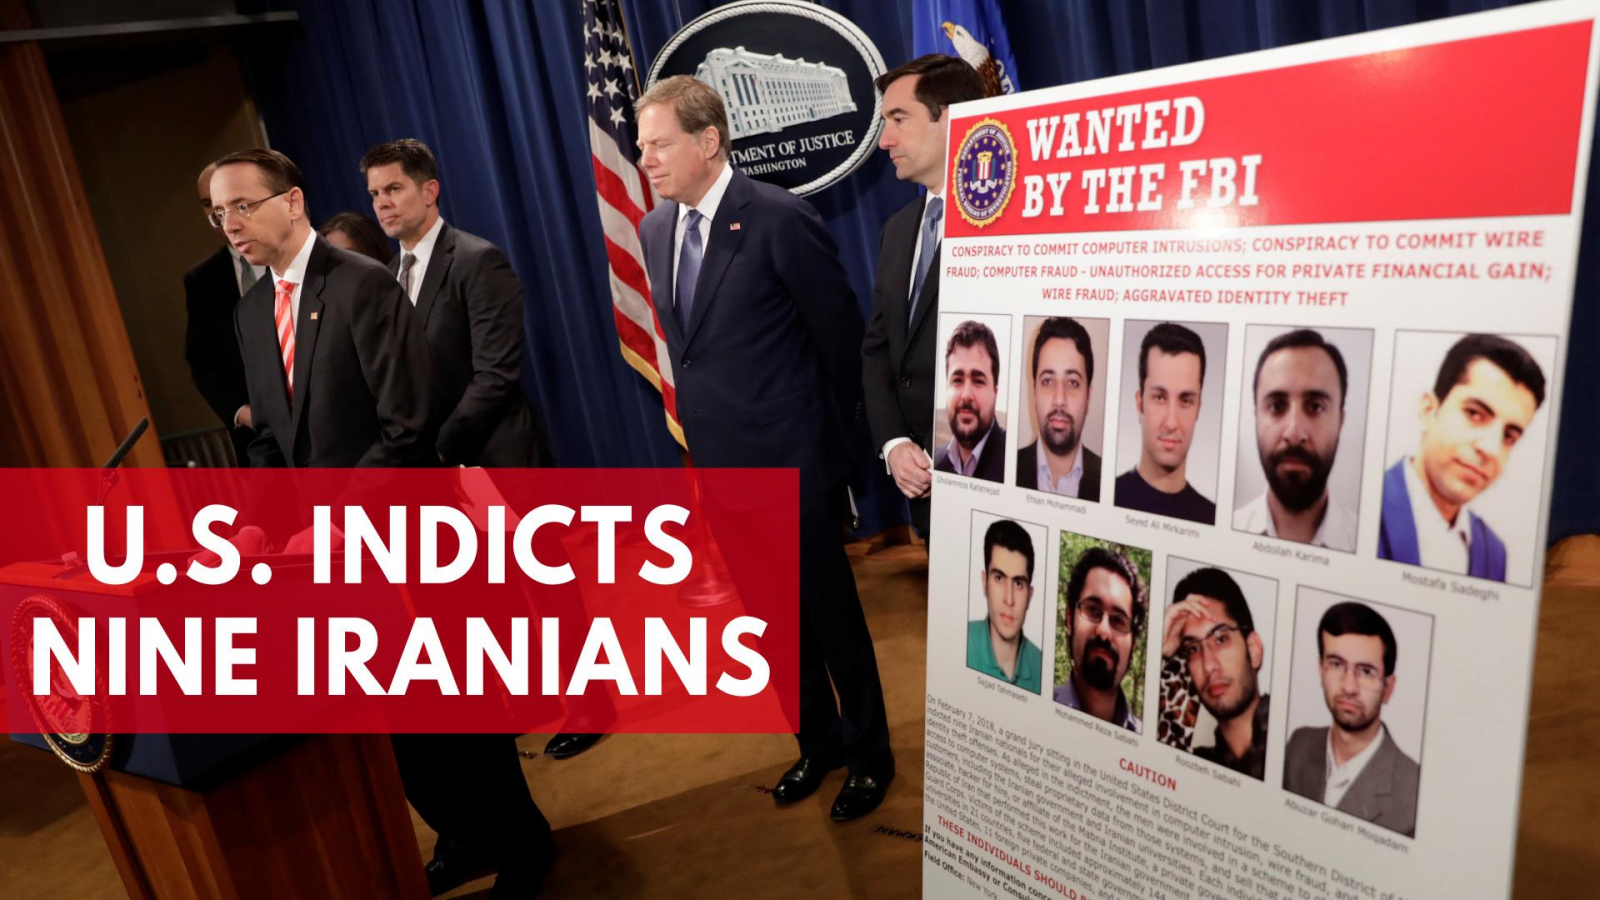 U.S. Indicts Nine Iranians In Hacking Investigation